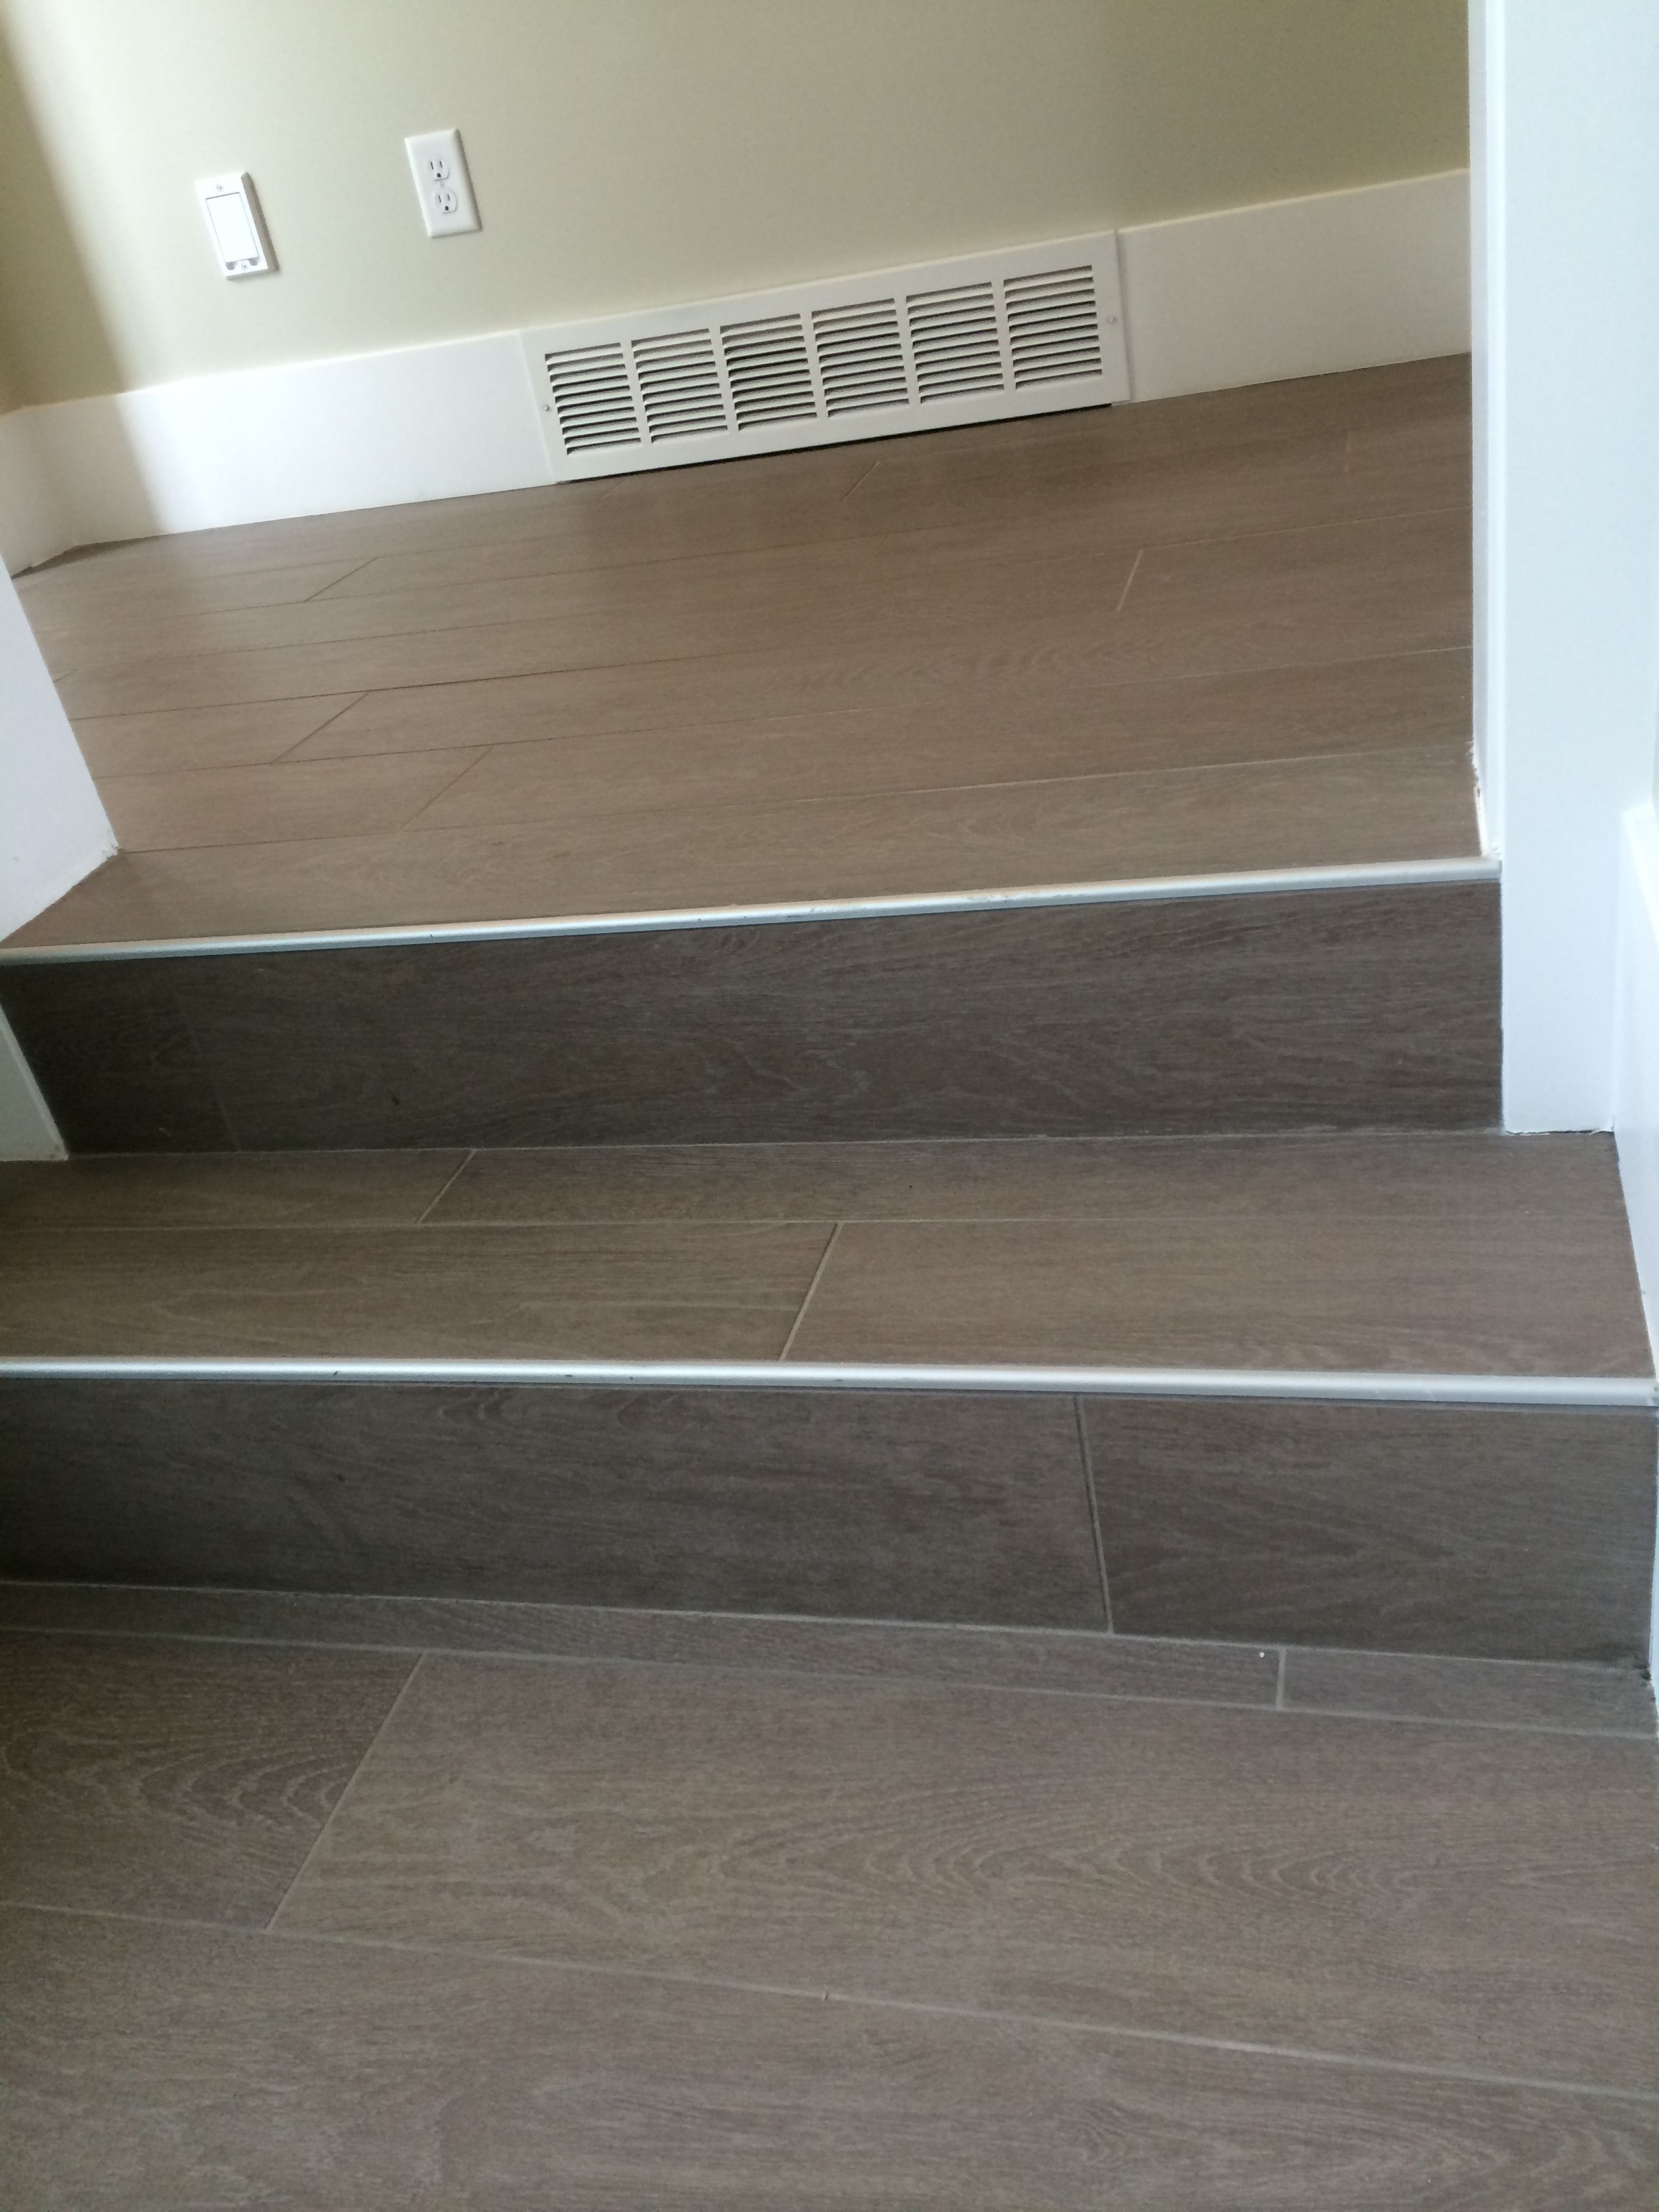 Wood floor tile on stairs with metal end cap finishes floors wood floor tile on stairs with metal end cap dailygadgetfo Choice Image